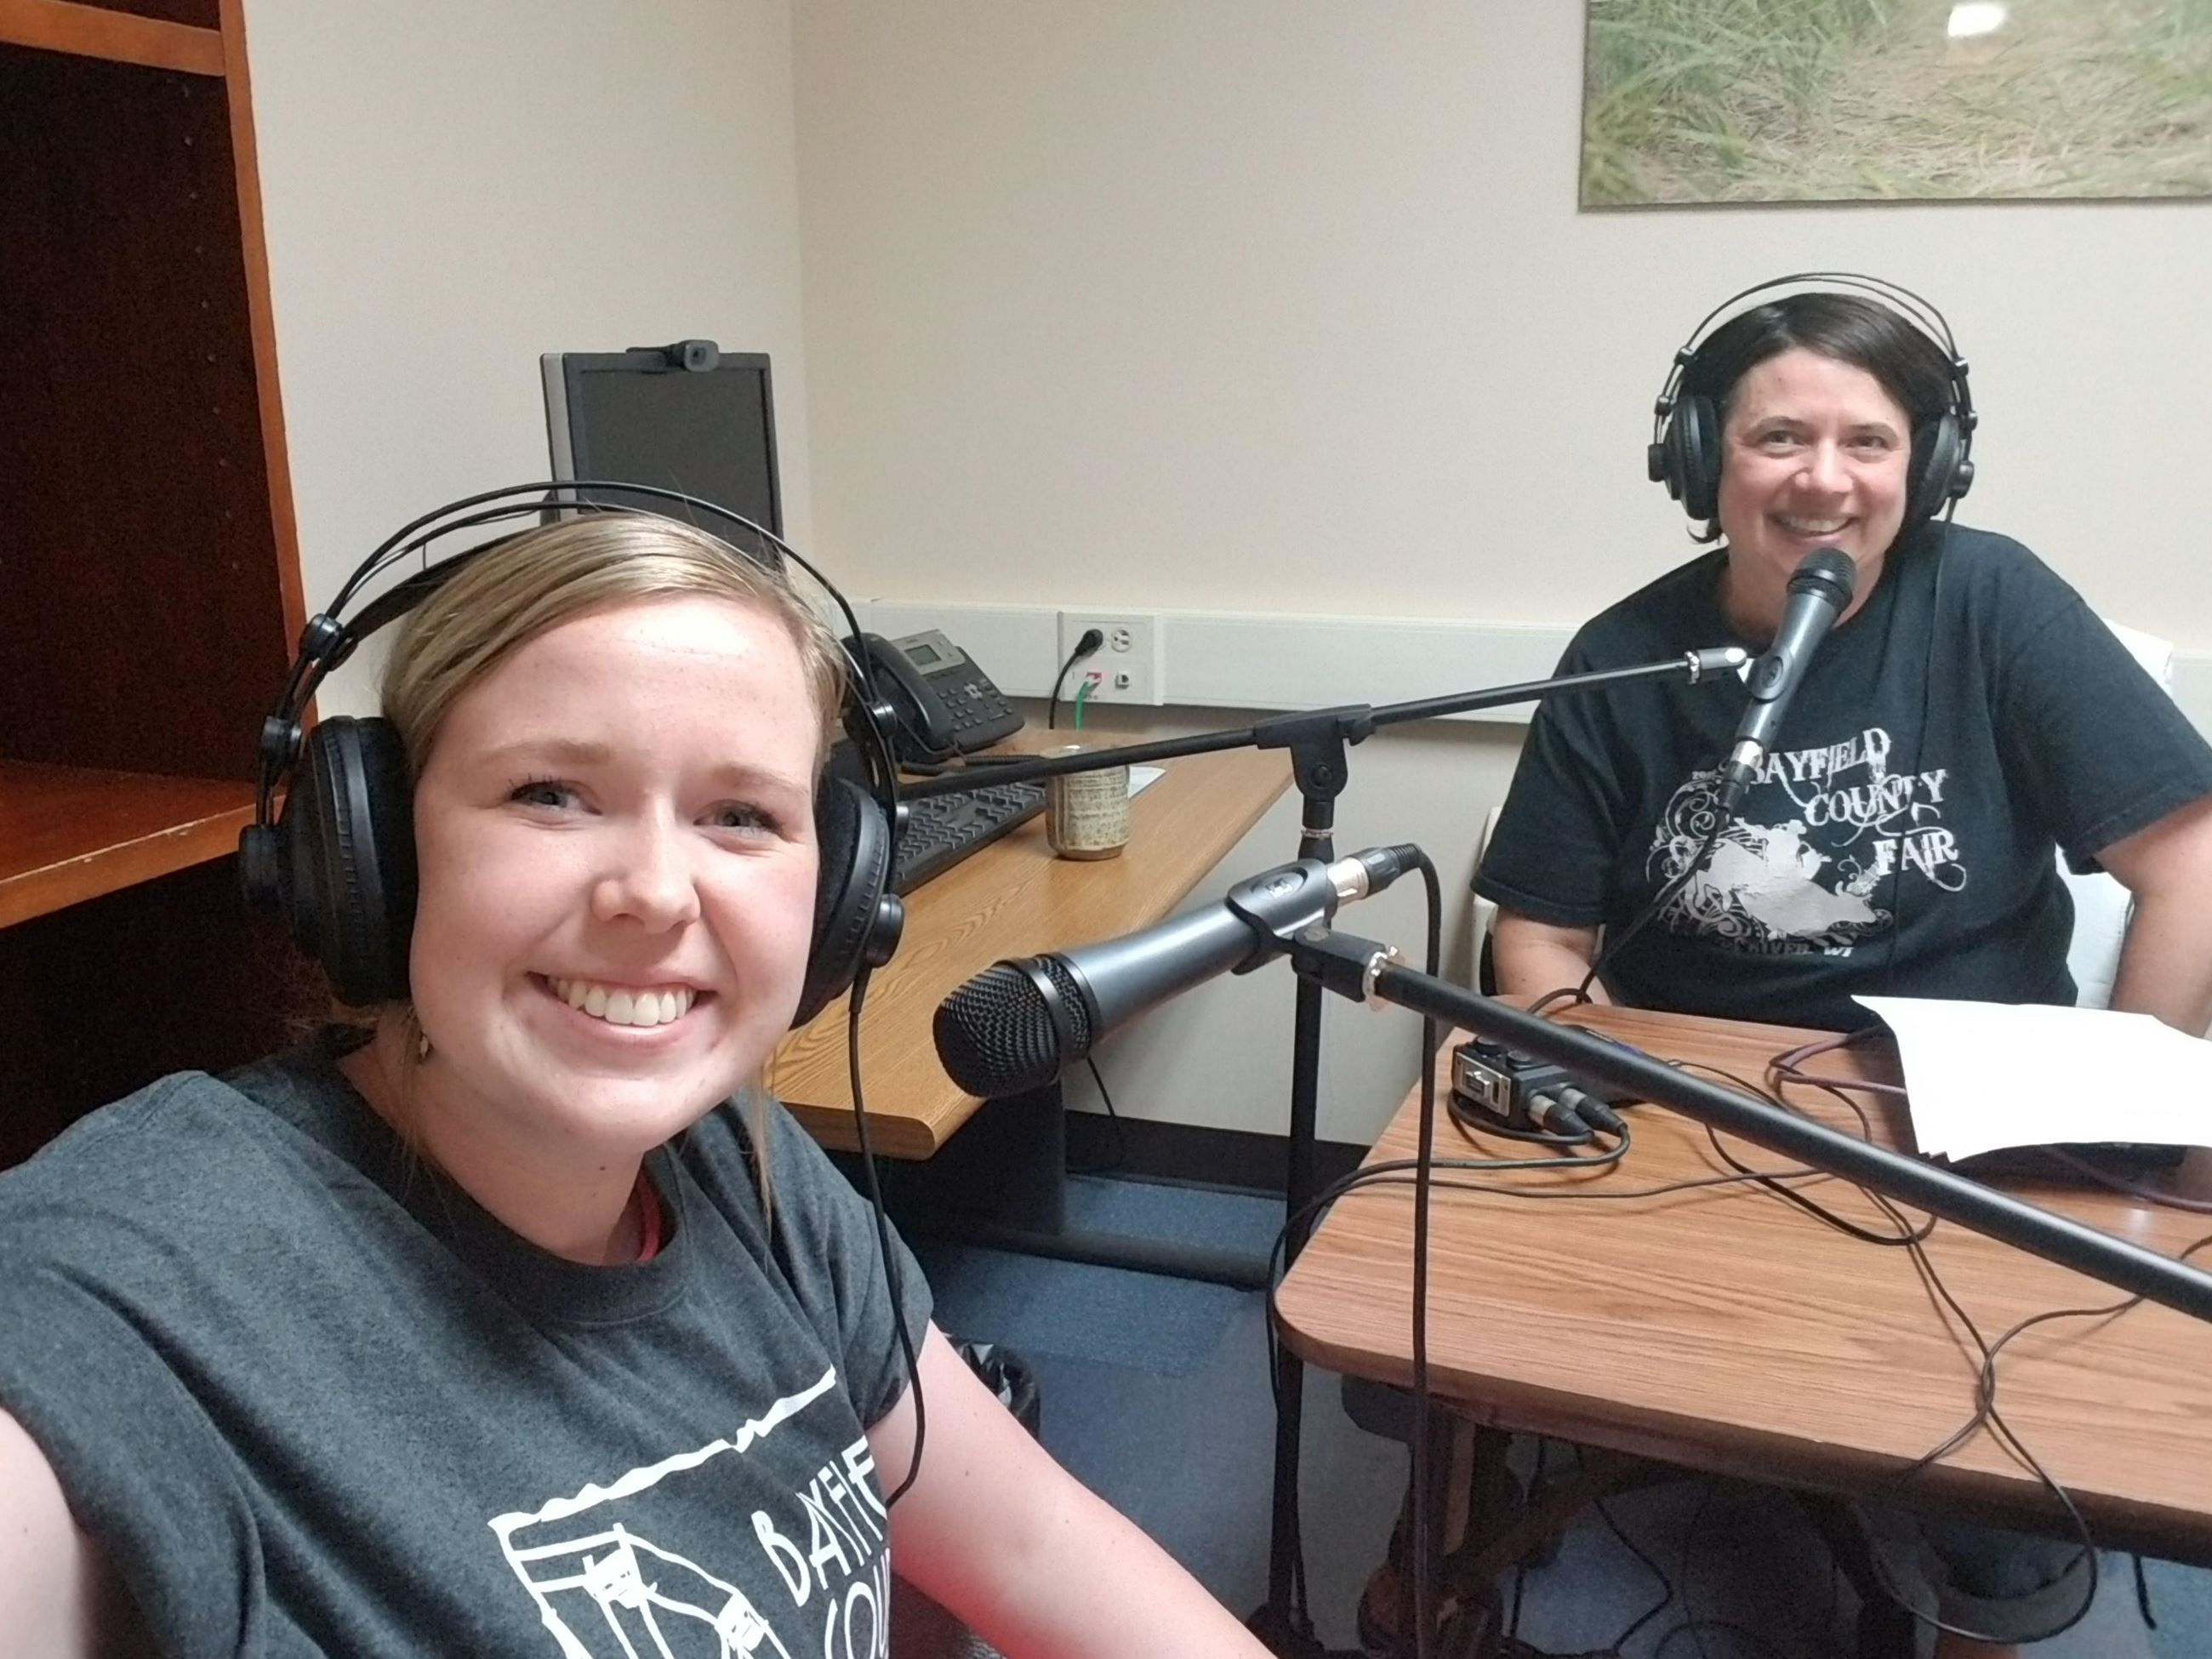 Mary Motiff and Emily Kovach-Erickson recording the Bayfield County Wild podcast